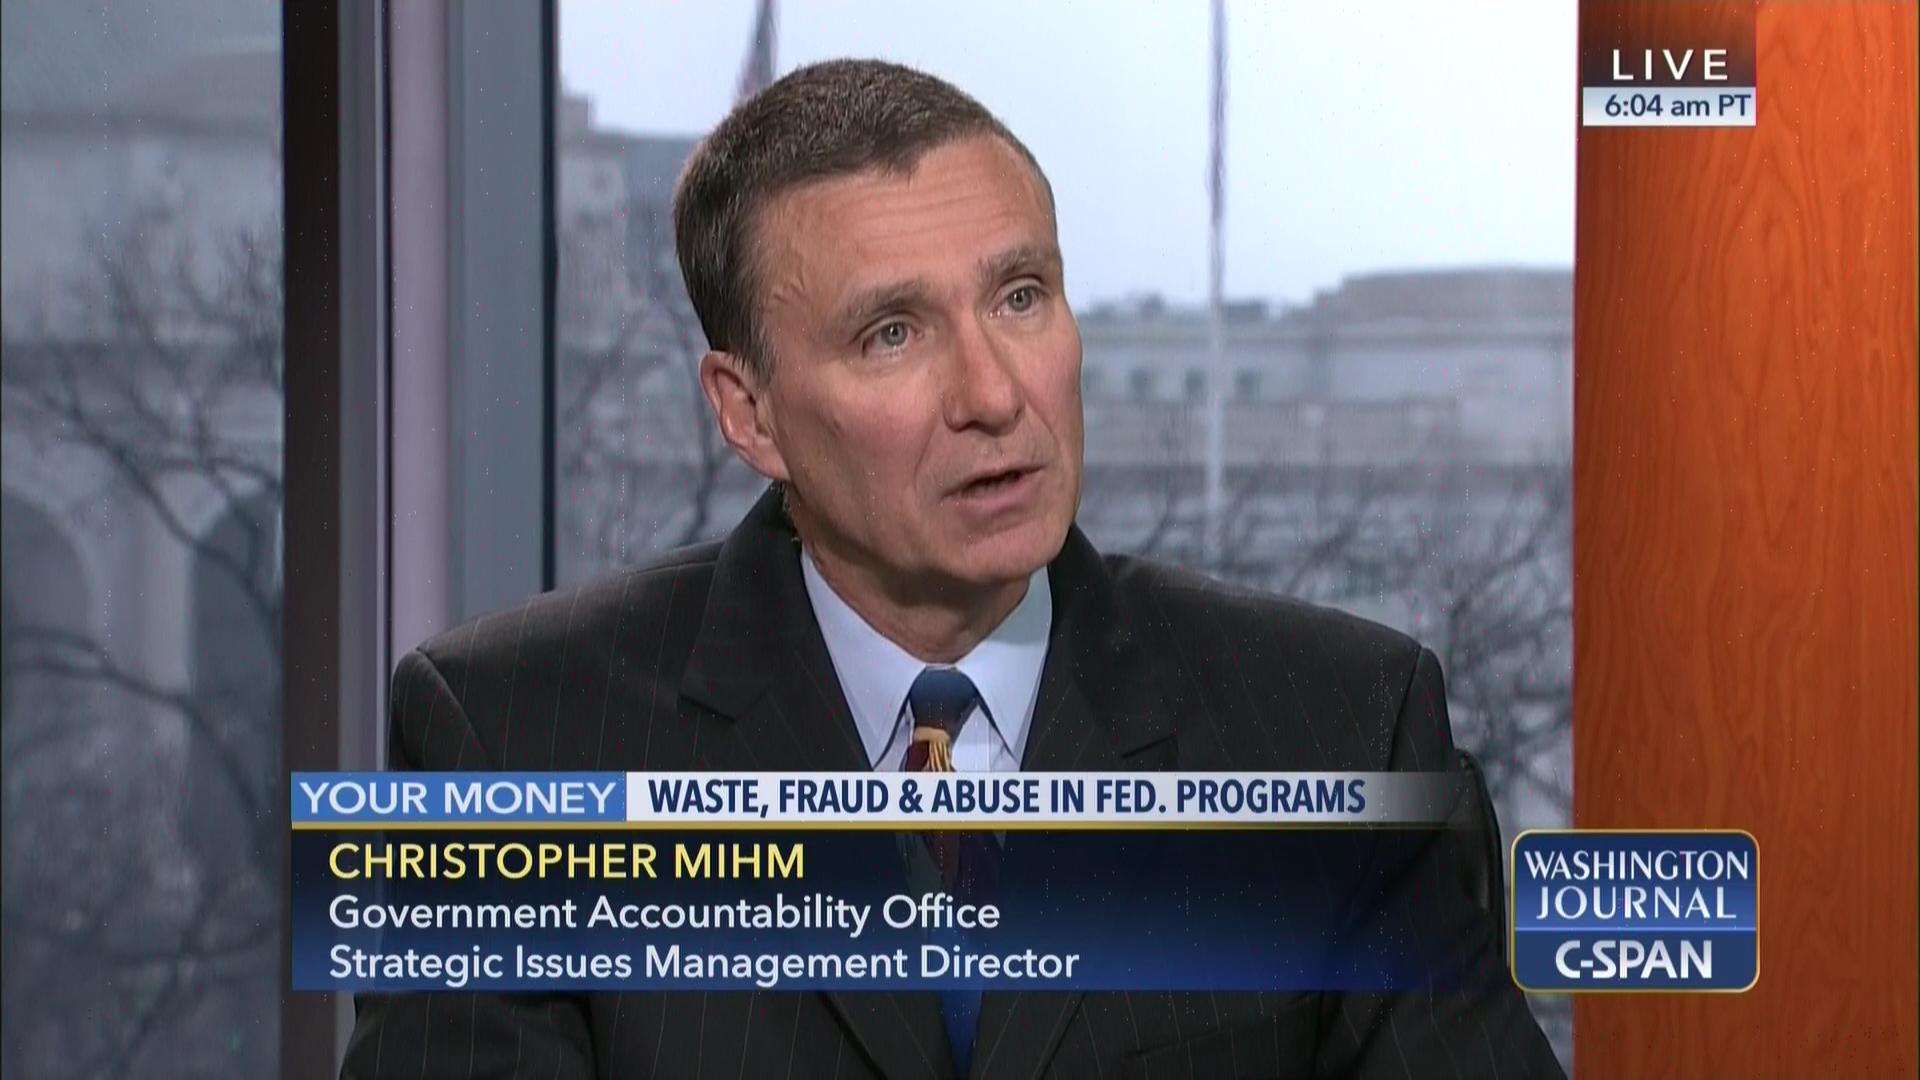 Washington Journal Chris Mihm Discusses Federal Waste Fraud Abuse